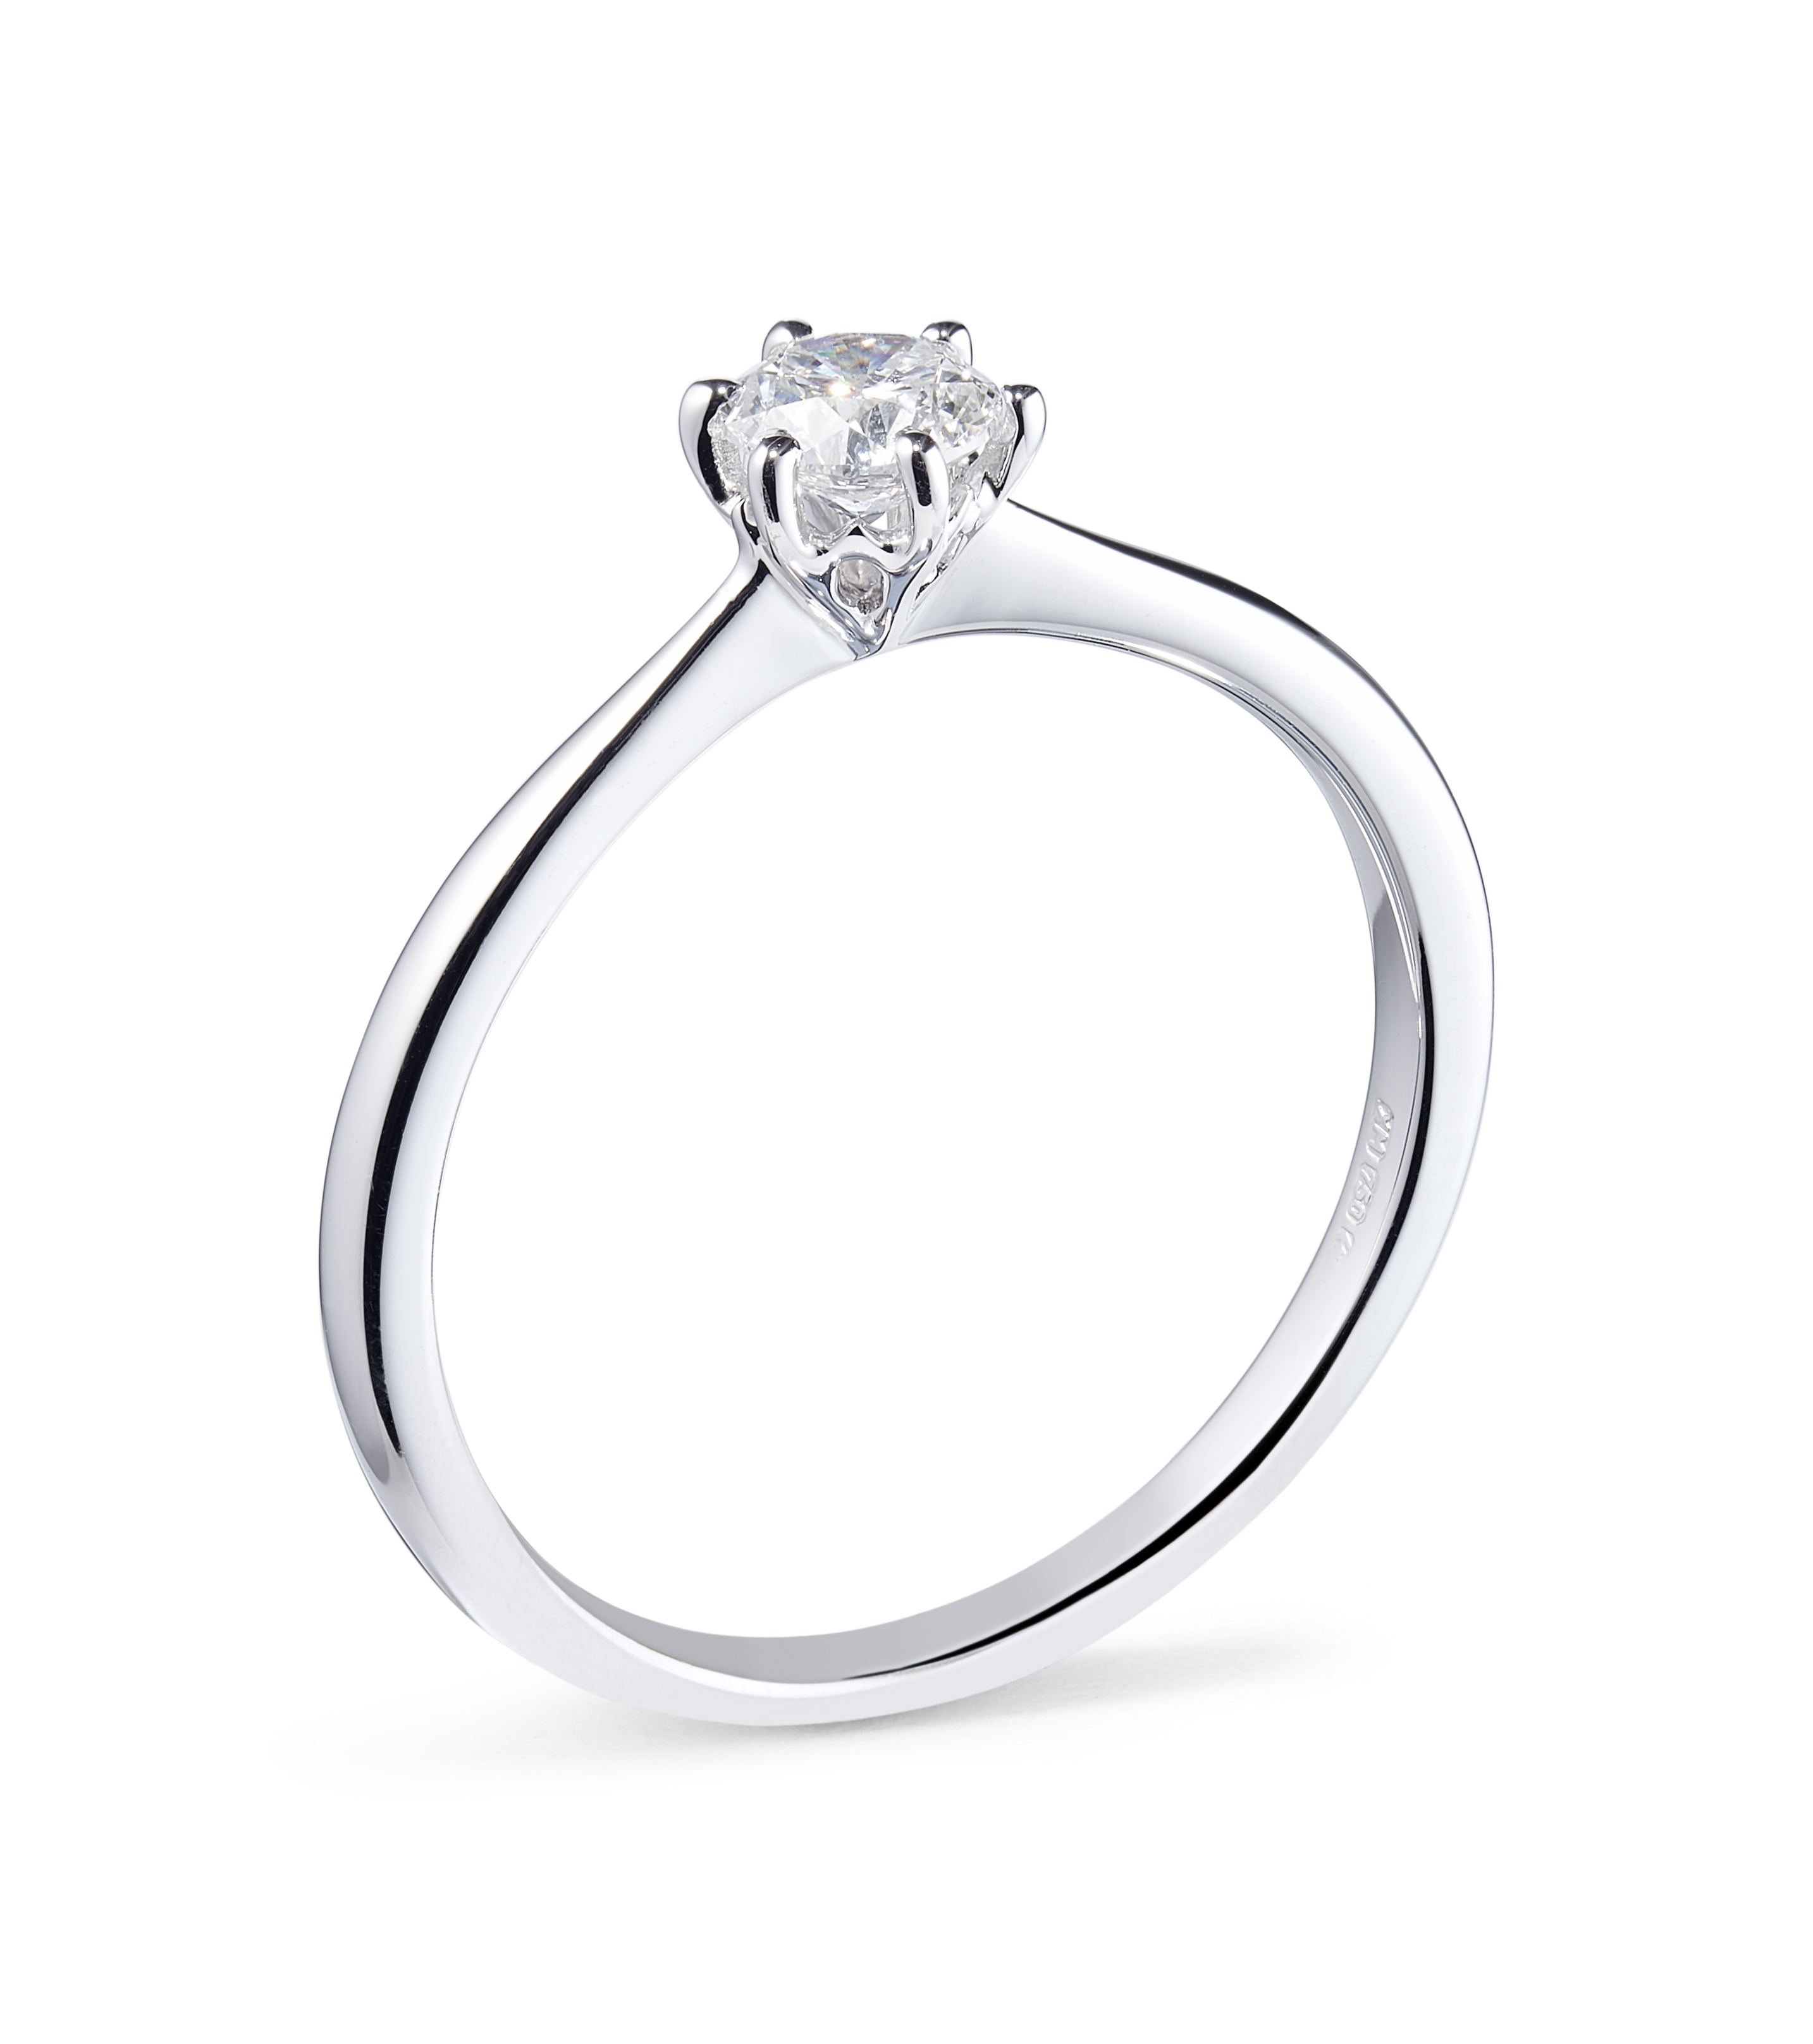 0.31ct Six Claw Solitaire Ring in 18ct White Gold